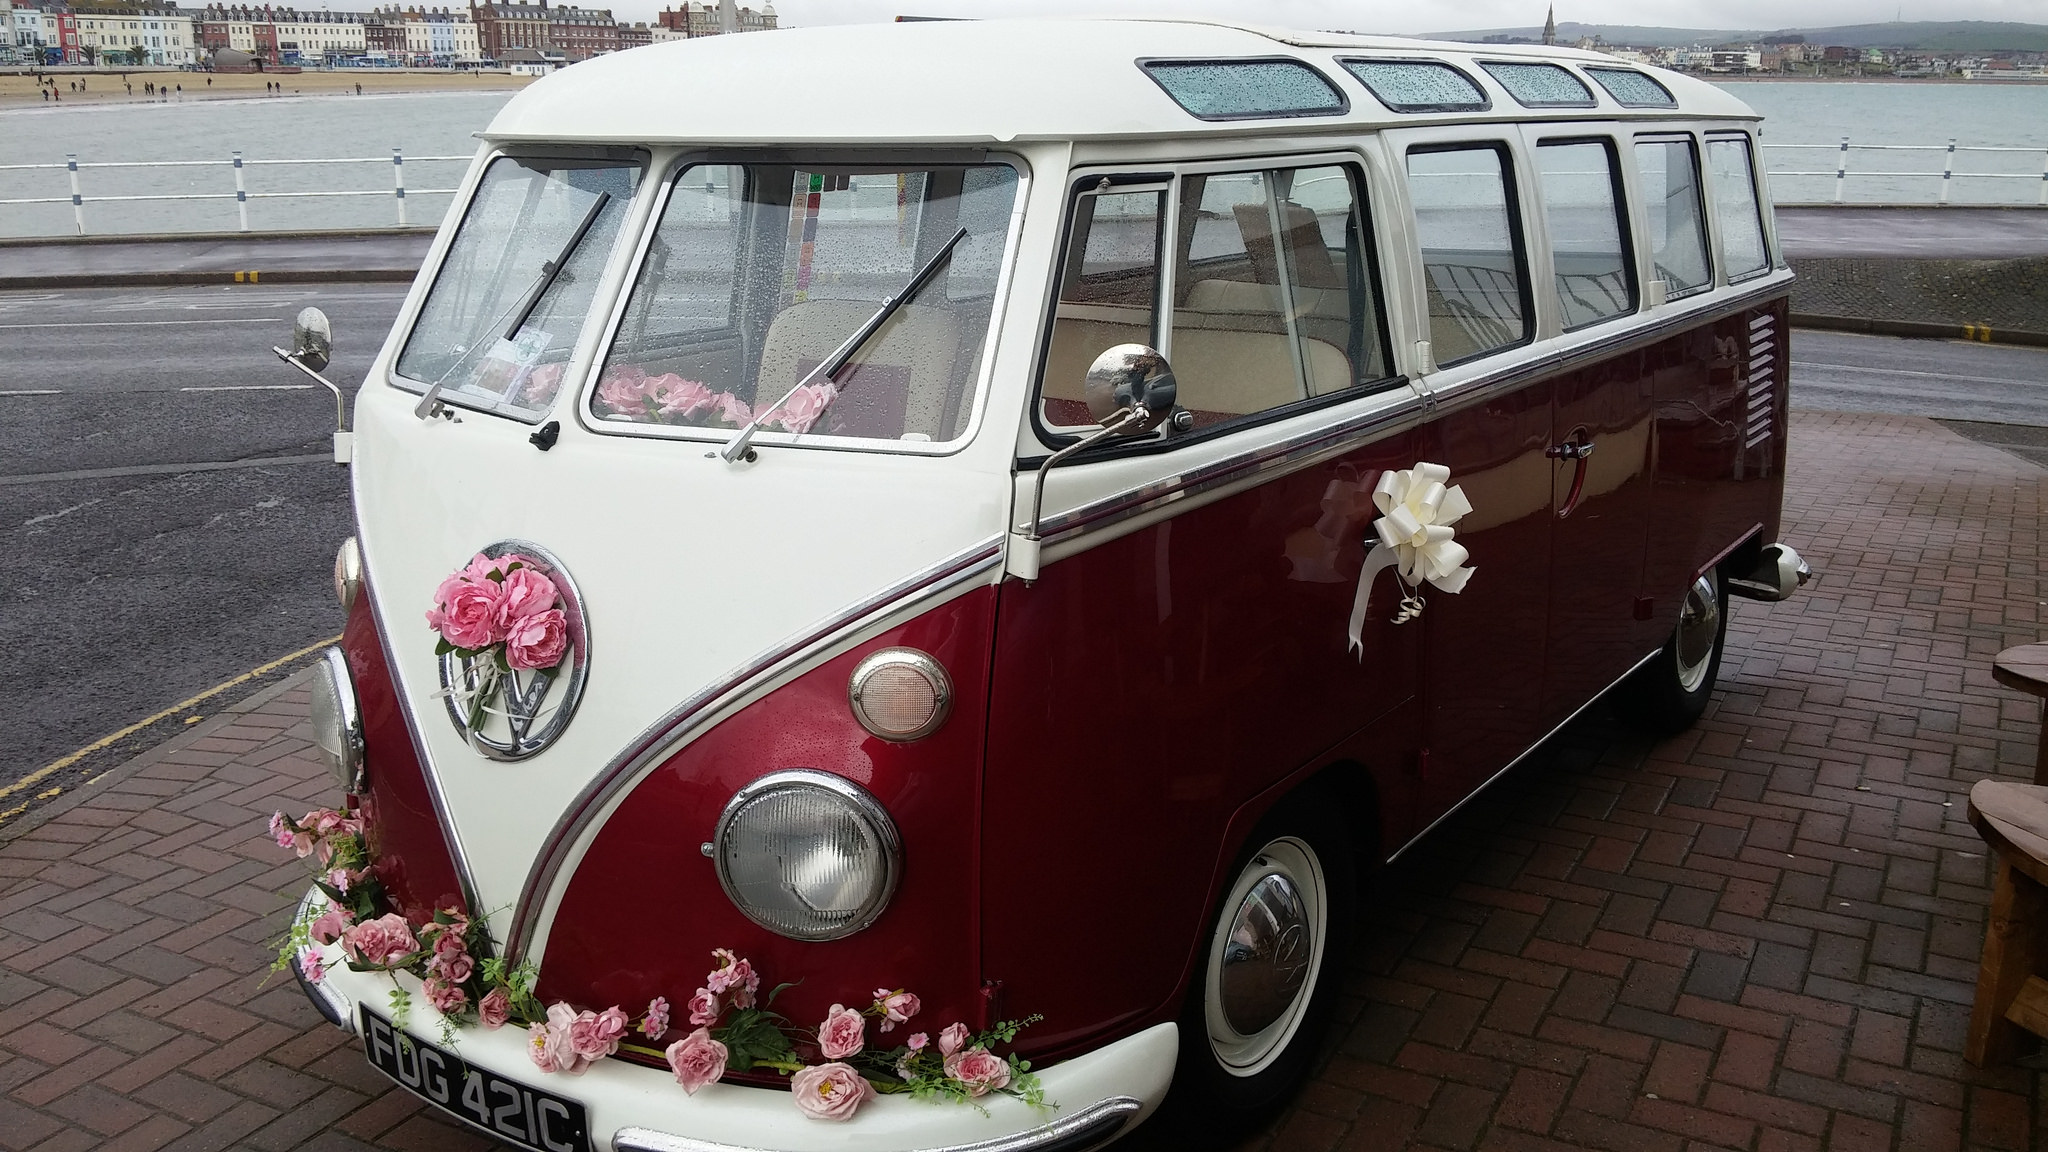 german-vw-wedding-procession-tradition-decorated